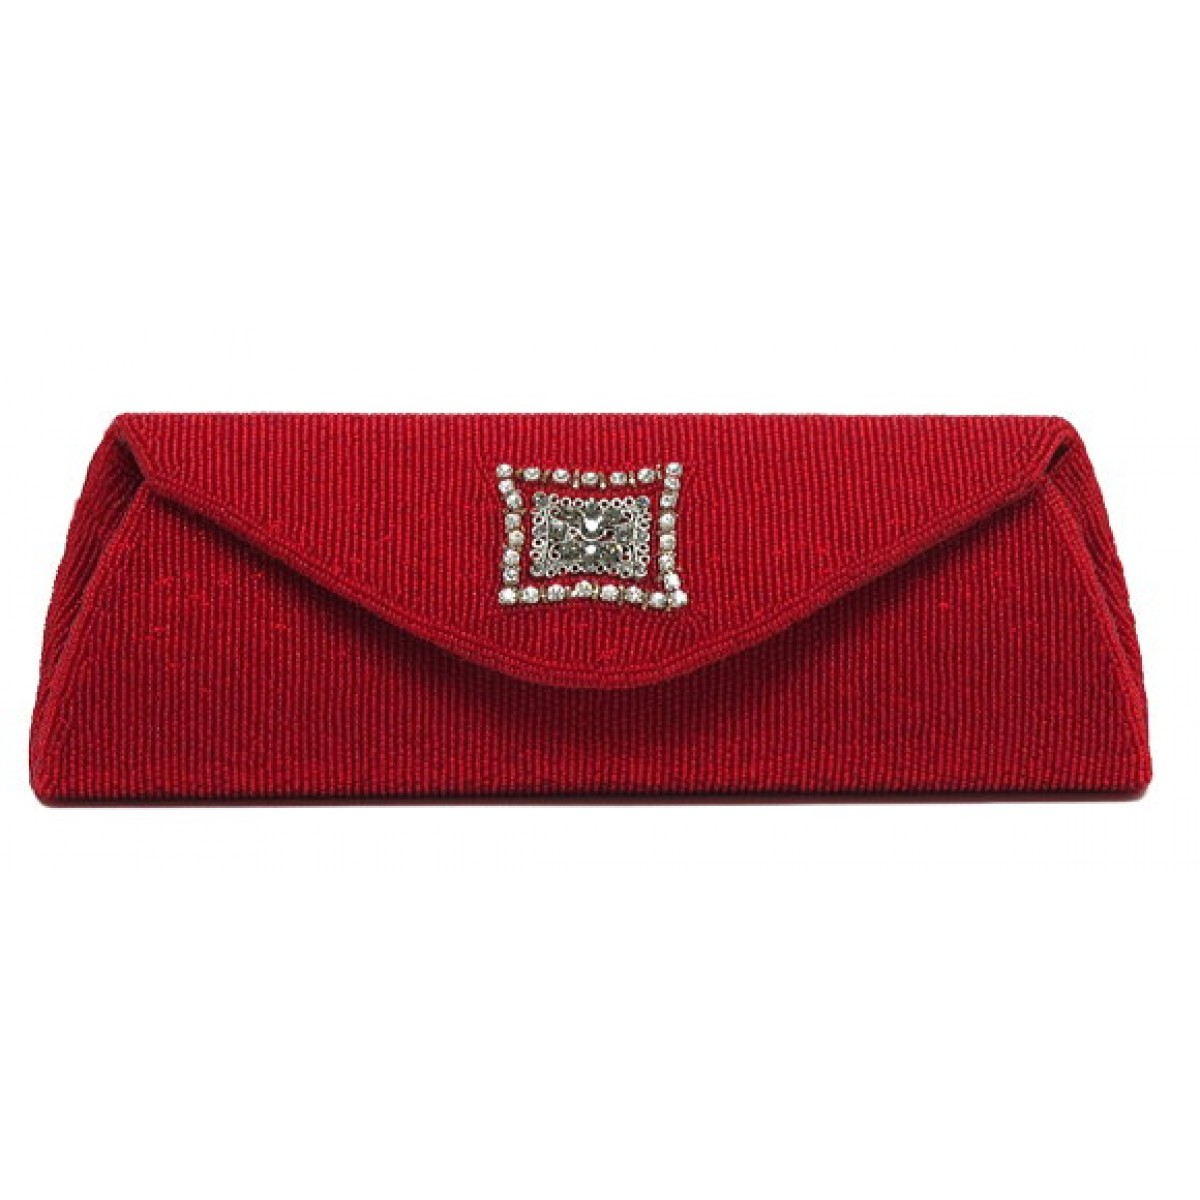 Beaded Clutch with Crystal Embellishment